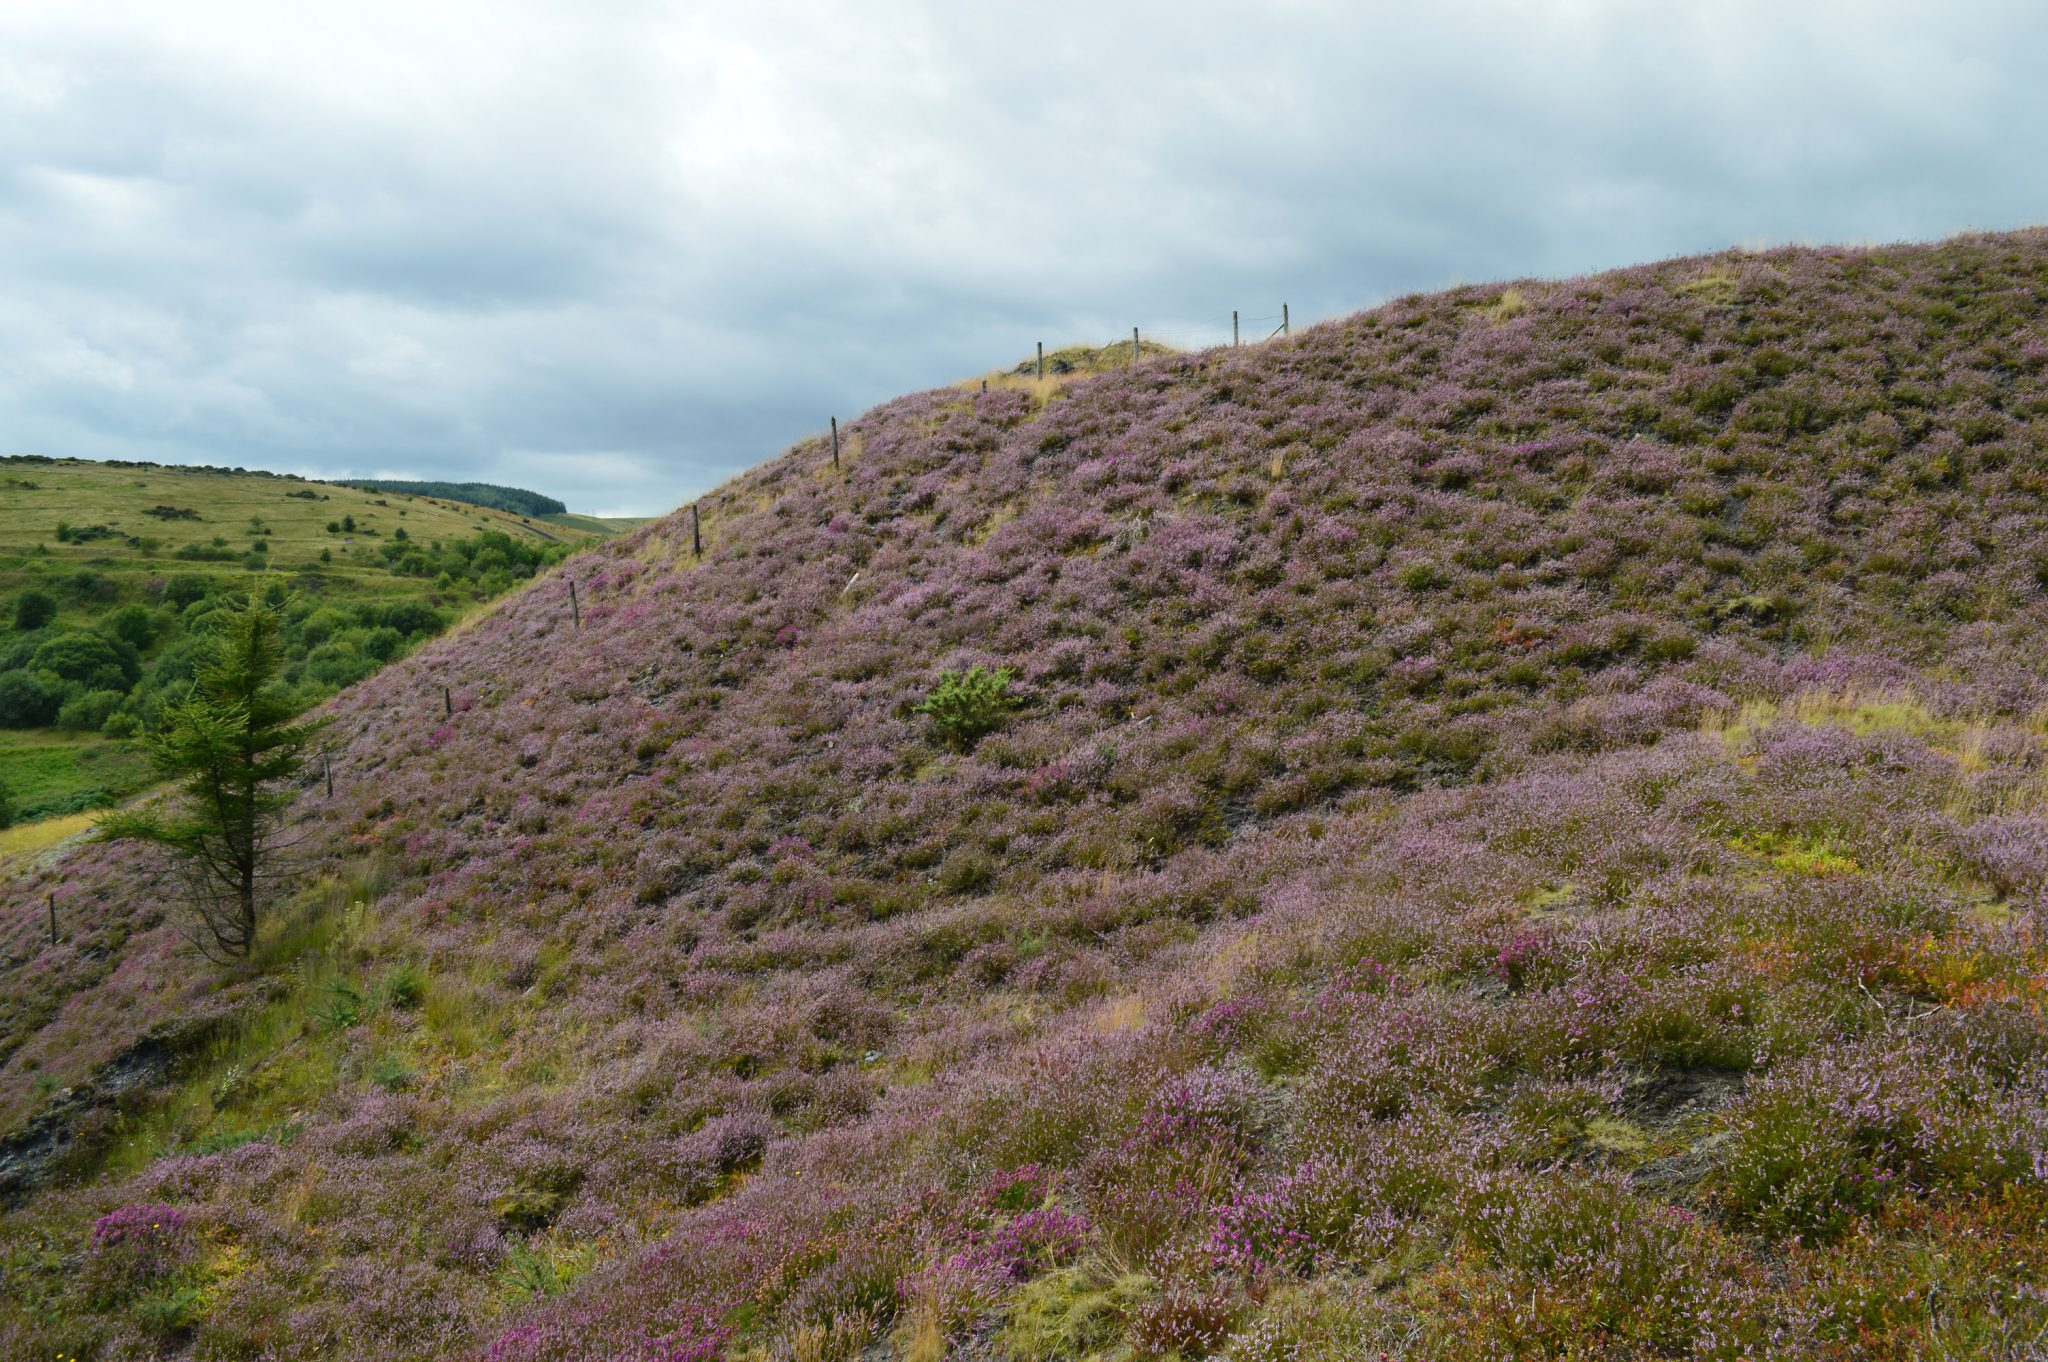 Reclaimed spoil heap in South Wales